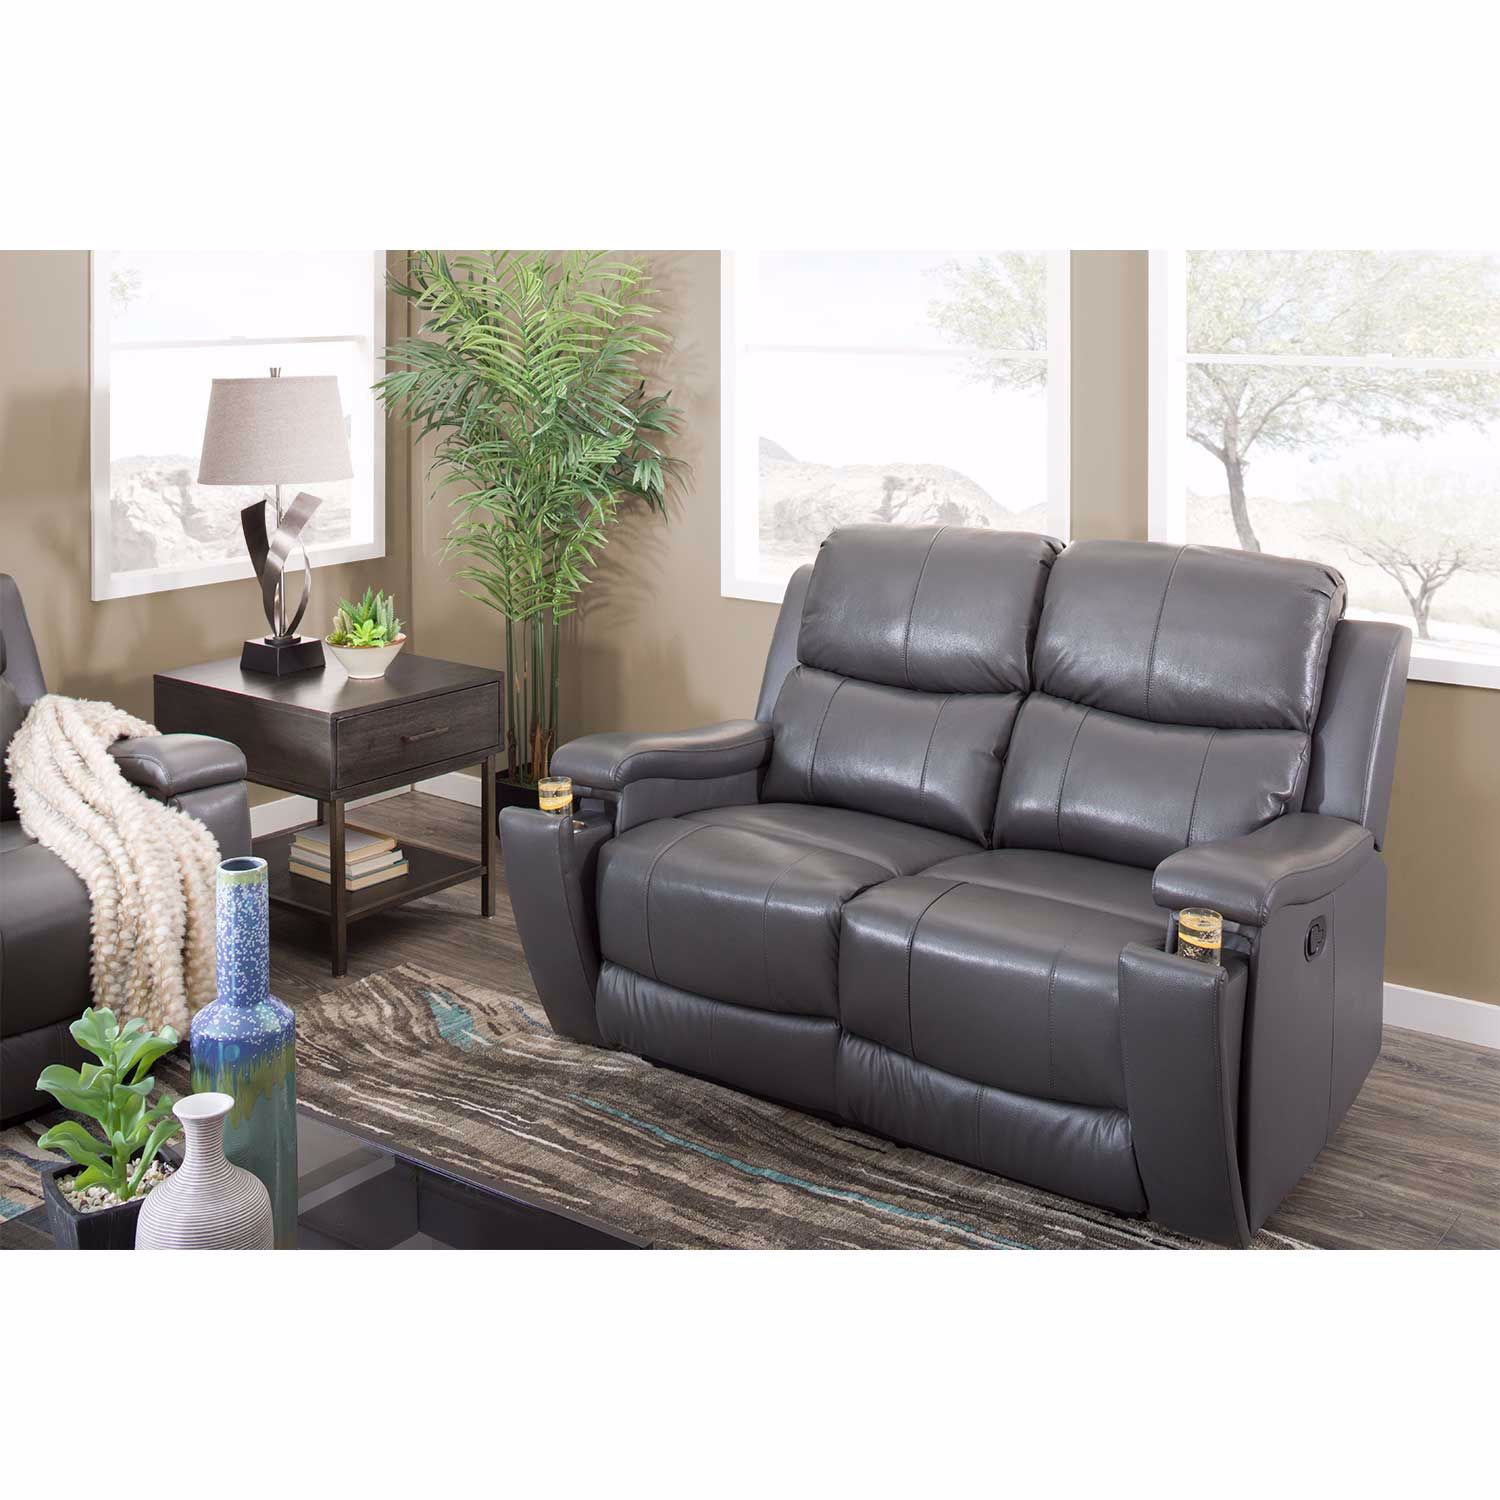 Picture of Dayton Leather Reclining Sofa